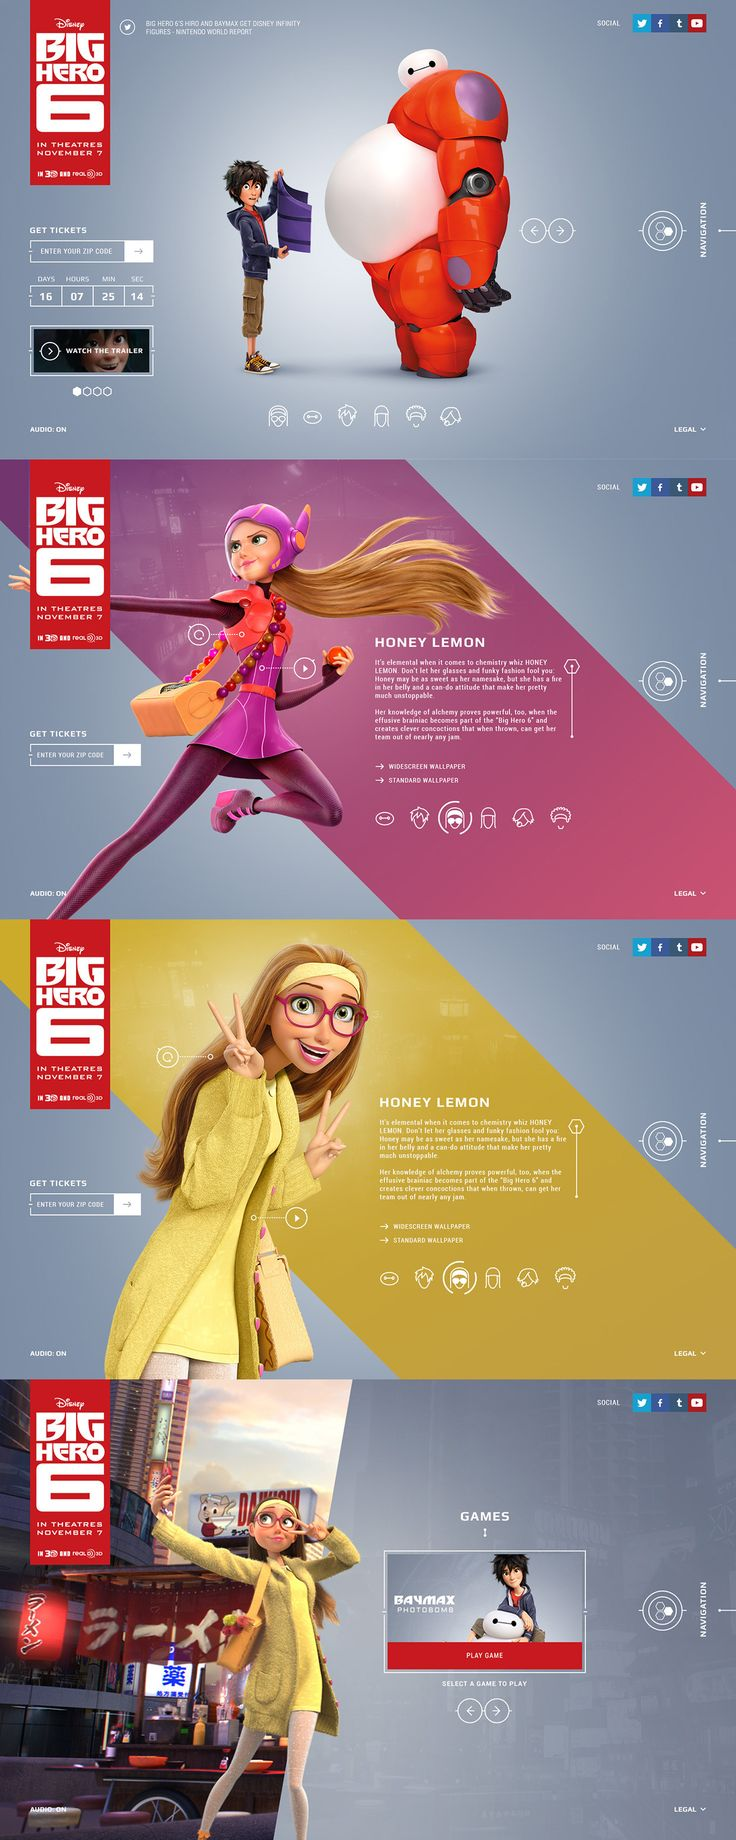 Big Hero 6 by Rolf A. Jensen & Watson